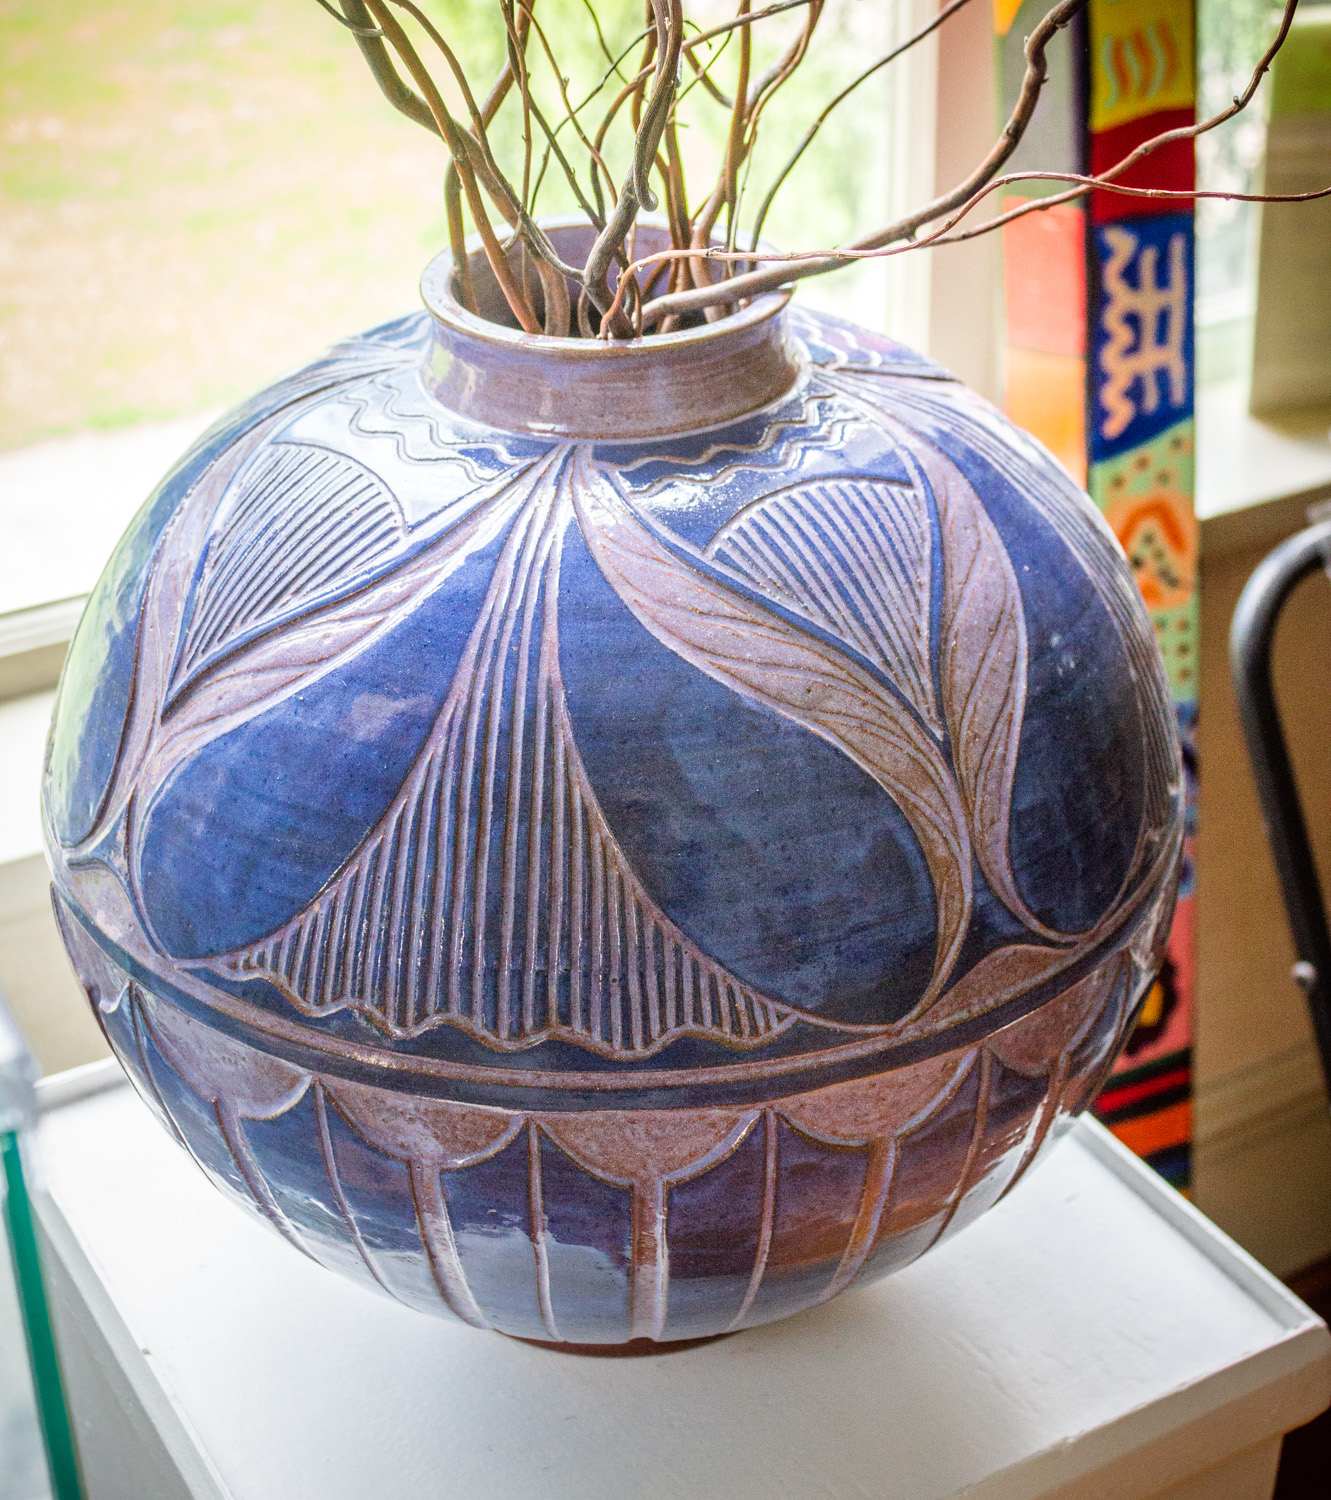 Stoneware Pottery Vessel by Larry Allen, 1996, Cheaha Exhibit Purchase Award Winner